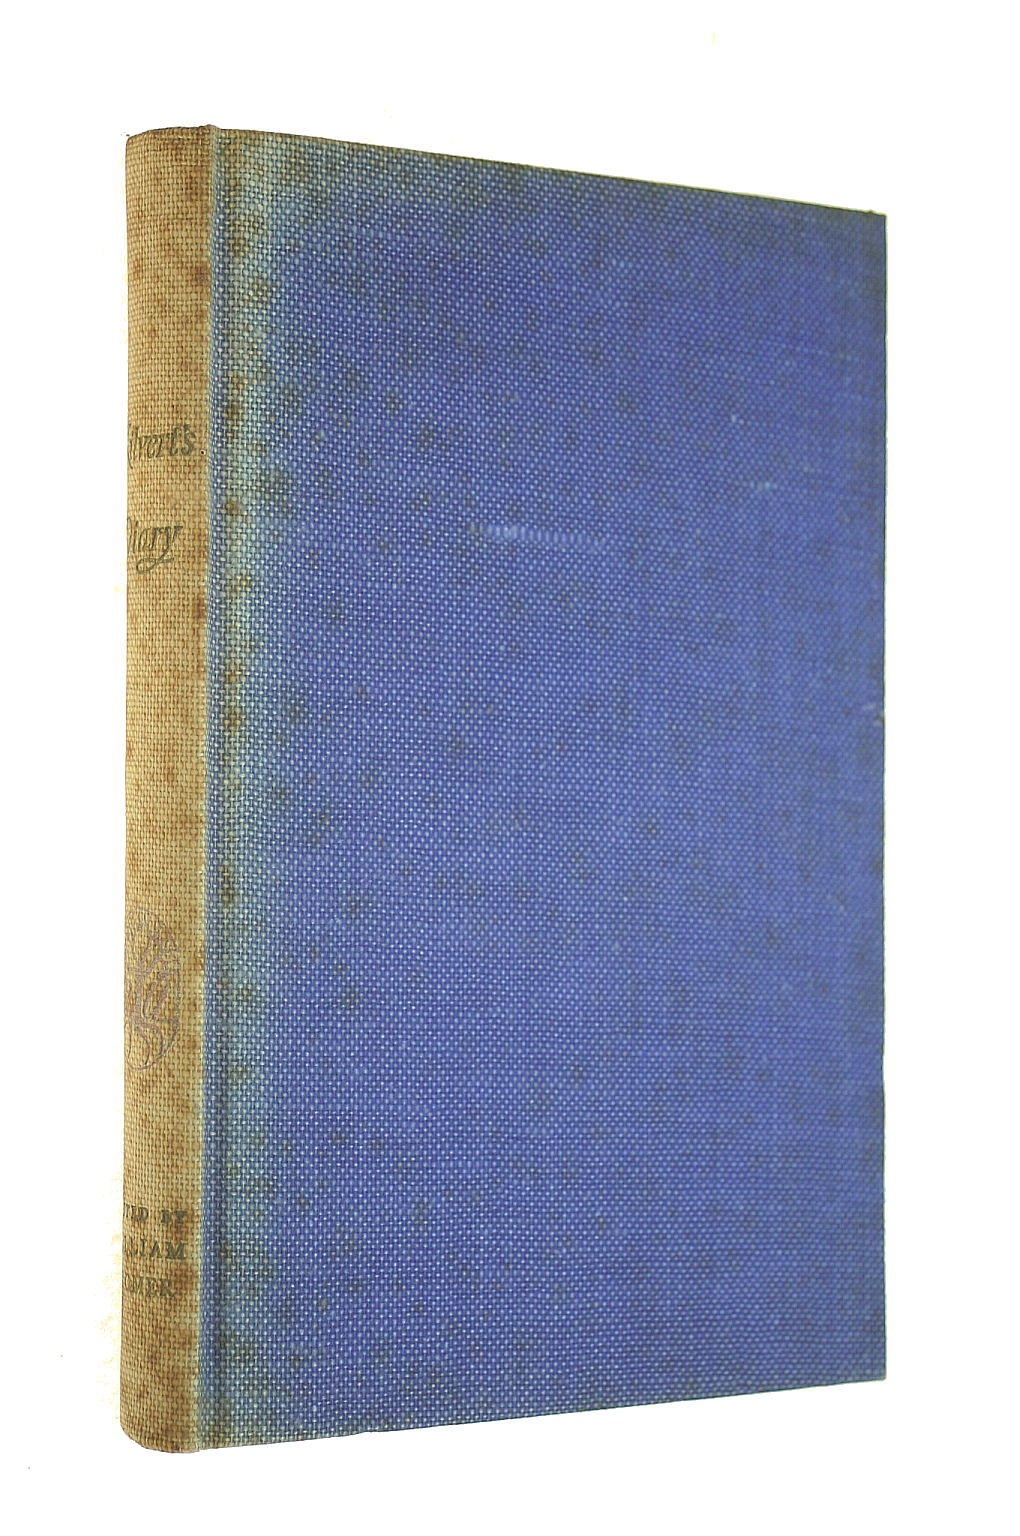 Image for Kilvert's Diary 1870-1879: Selections from the Diary of the Rev Francis Kilvert Chosen by William Plomer